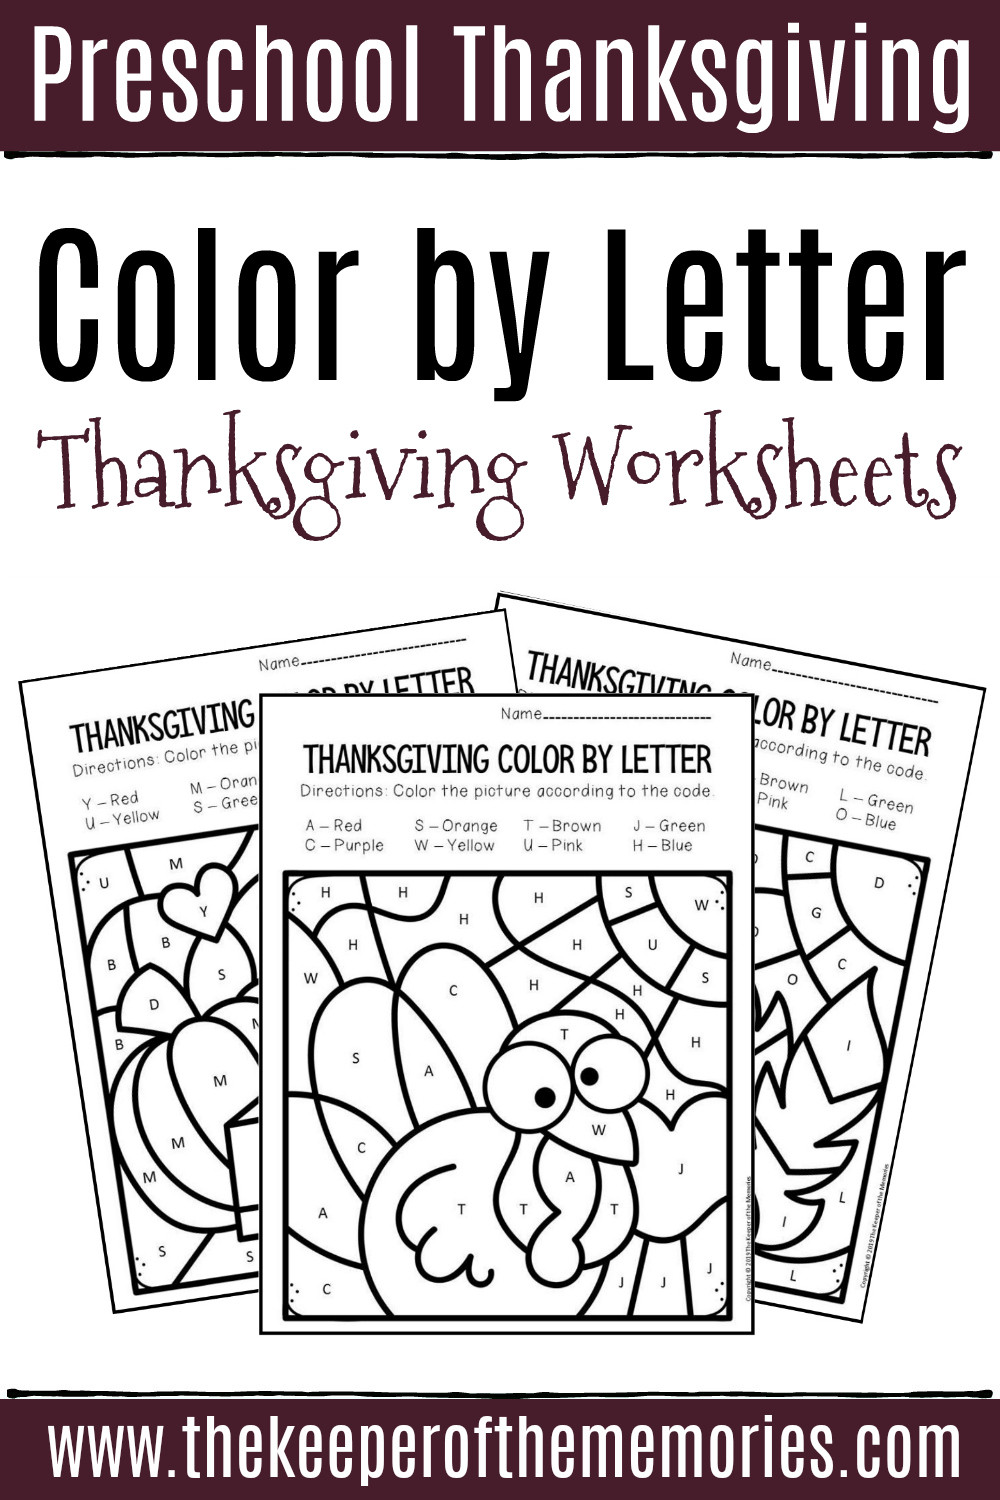 Color Blue Worksheets for Preschool Color by Letter Thanksgiving Preschool Worksheets